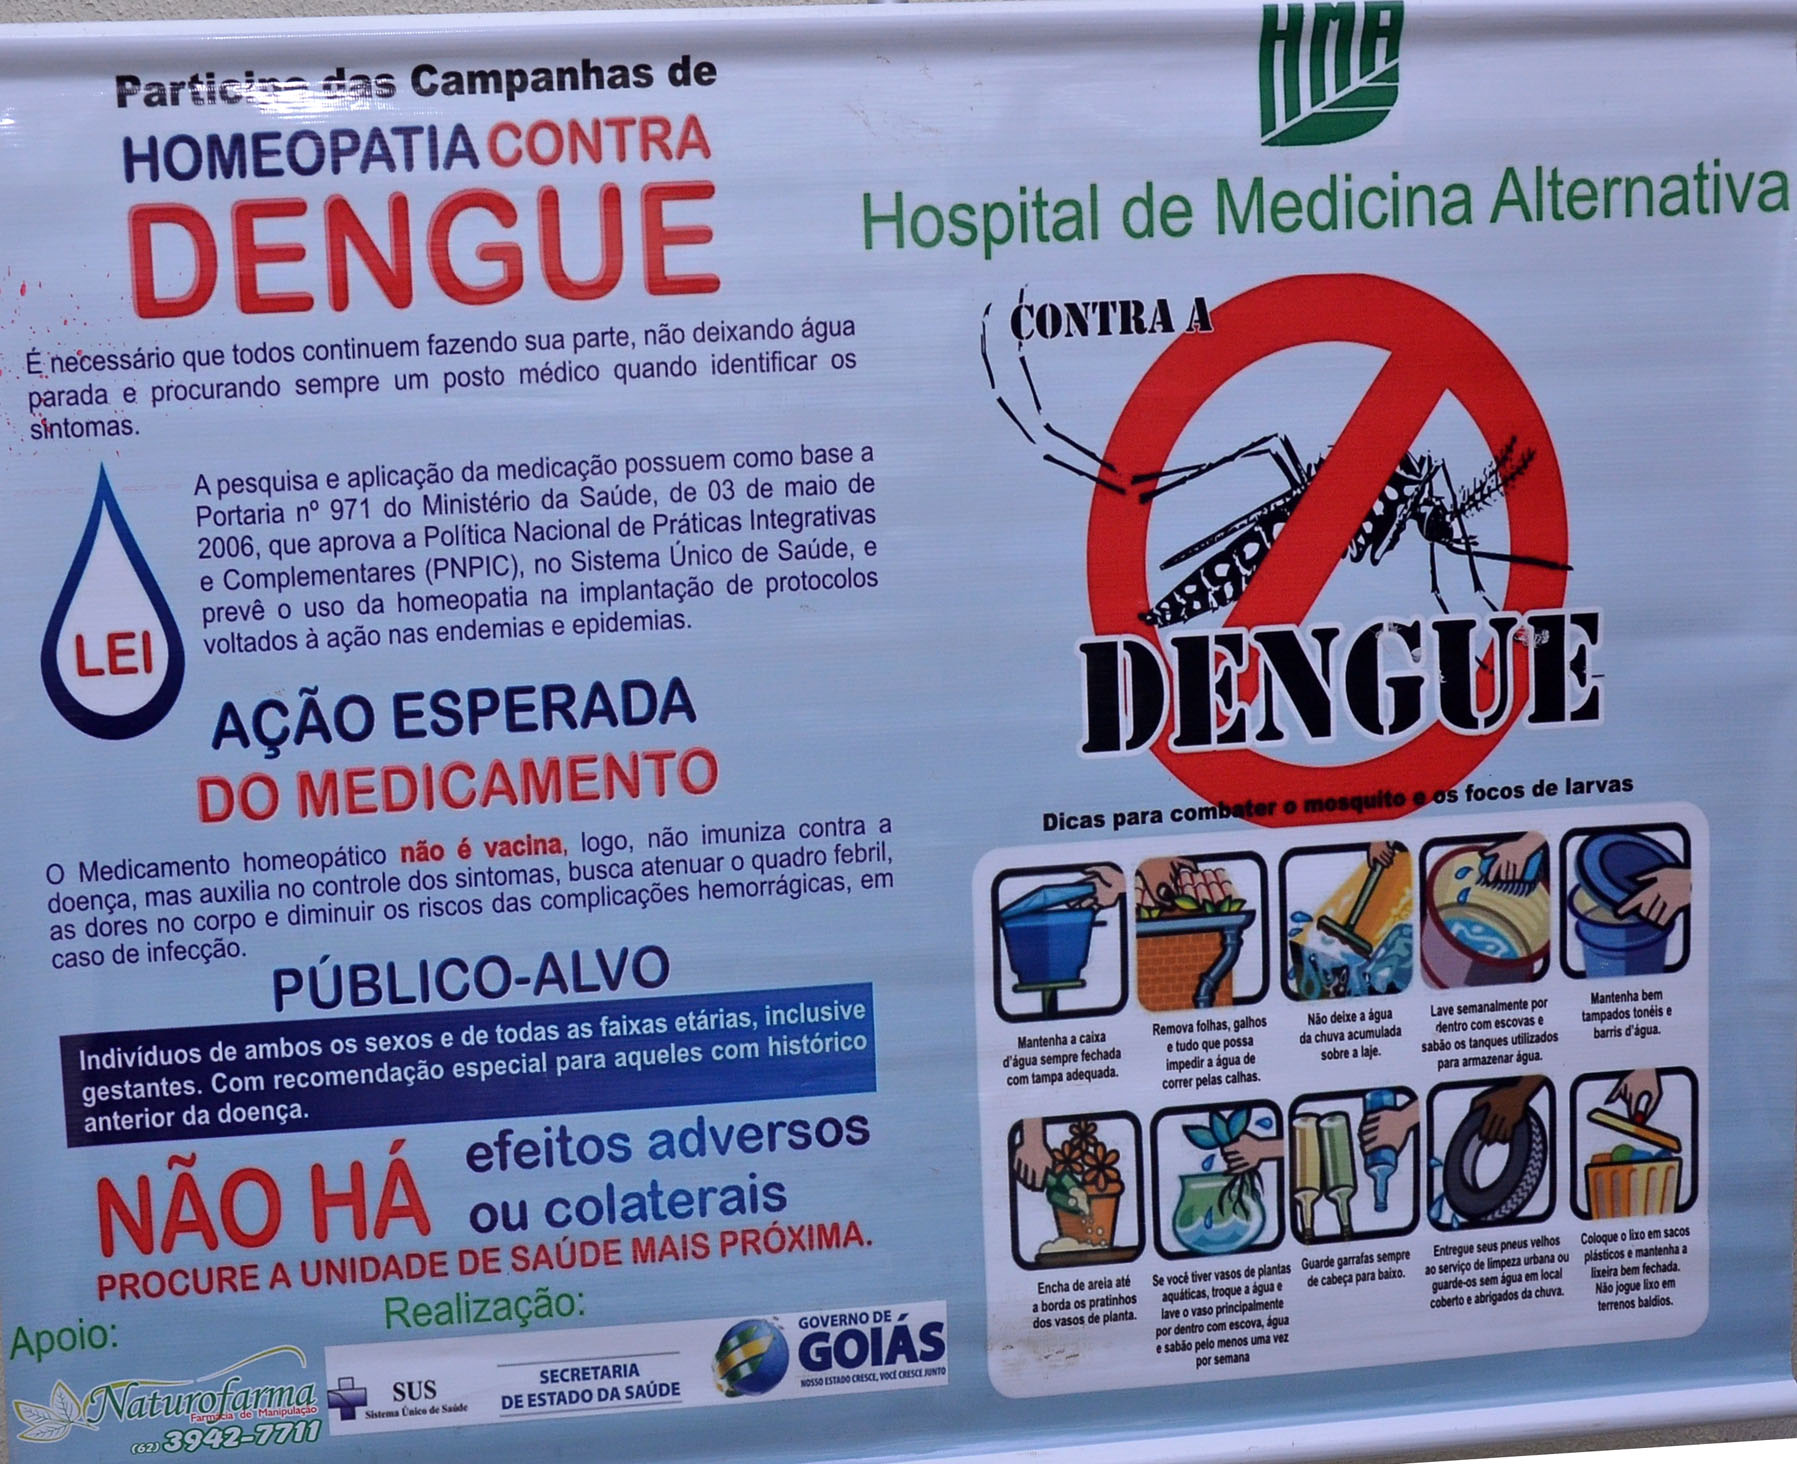 goias homeopatia e dengue 1